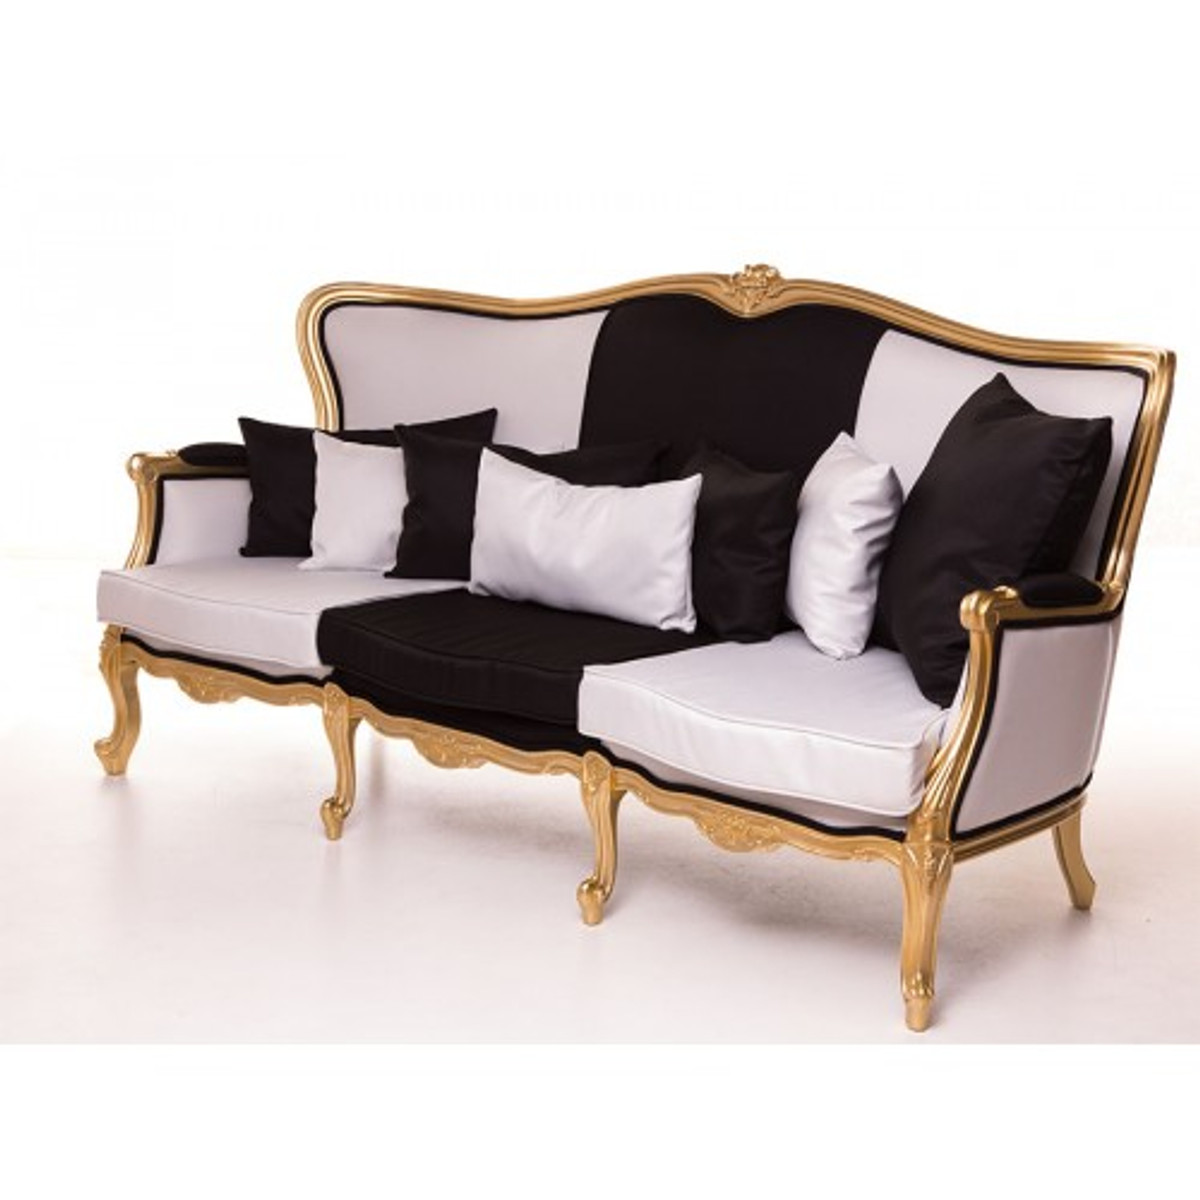 casa padrino luxus barock sofa schwarz wei gold 210 cm sitzbank m bel luxury hotel. Black Bedroom Furniture Sets. Home Design Ideas